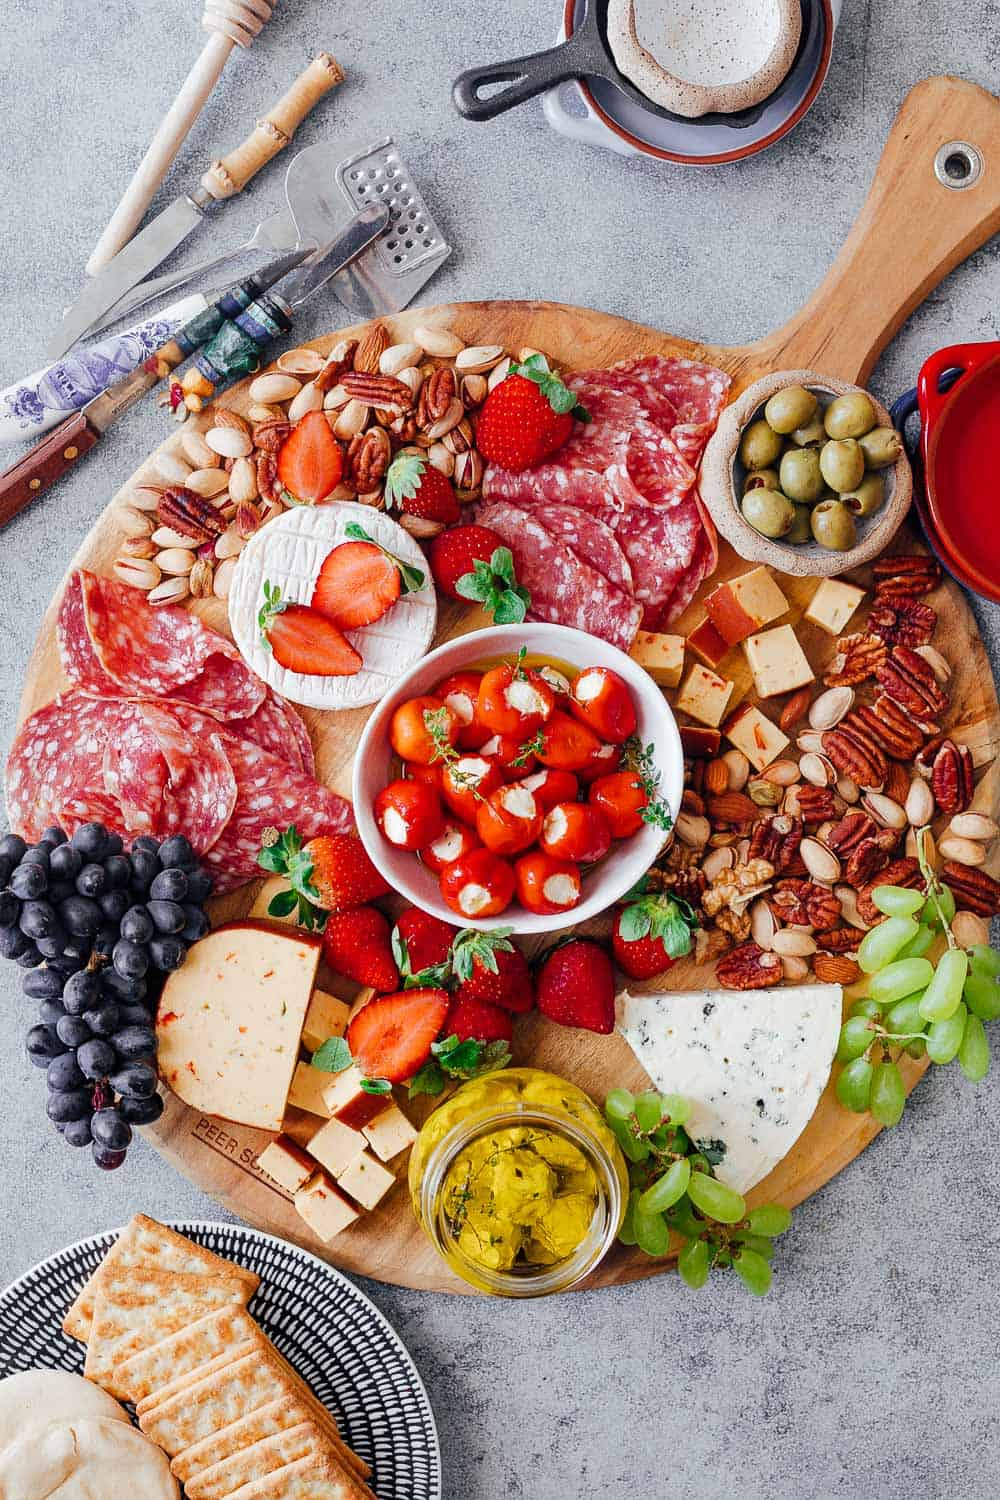 Step #5 in creating the ultimate wine and cheese board is to add local, seasonal fruits to the board. This helps keep the cost down as seasonal fruits are usually the cheapest